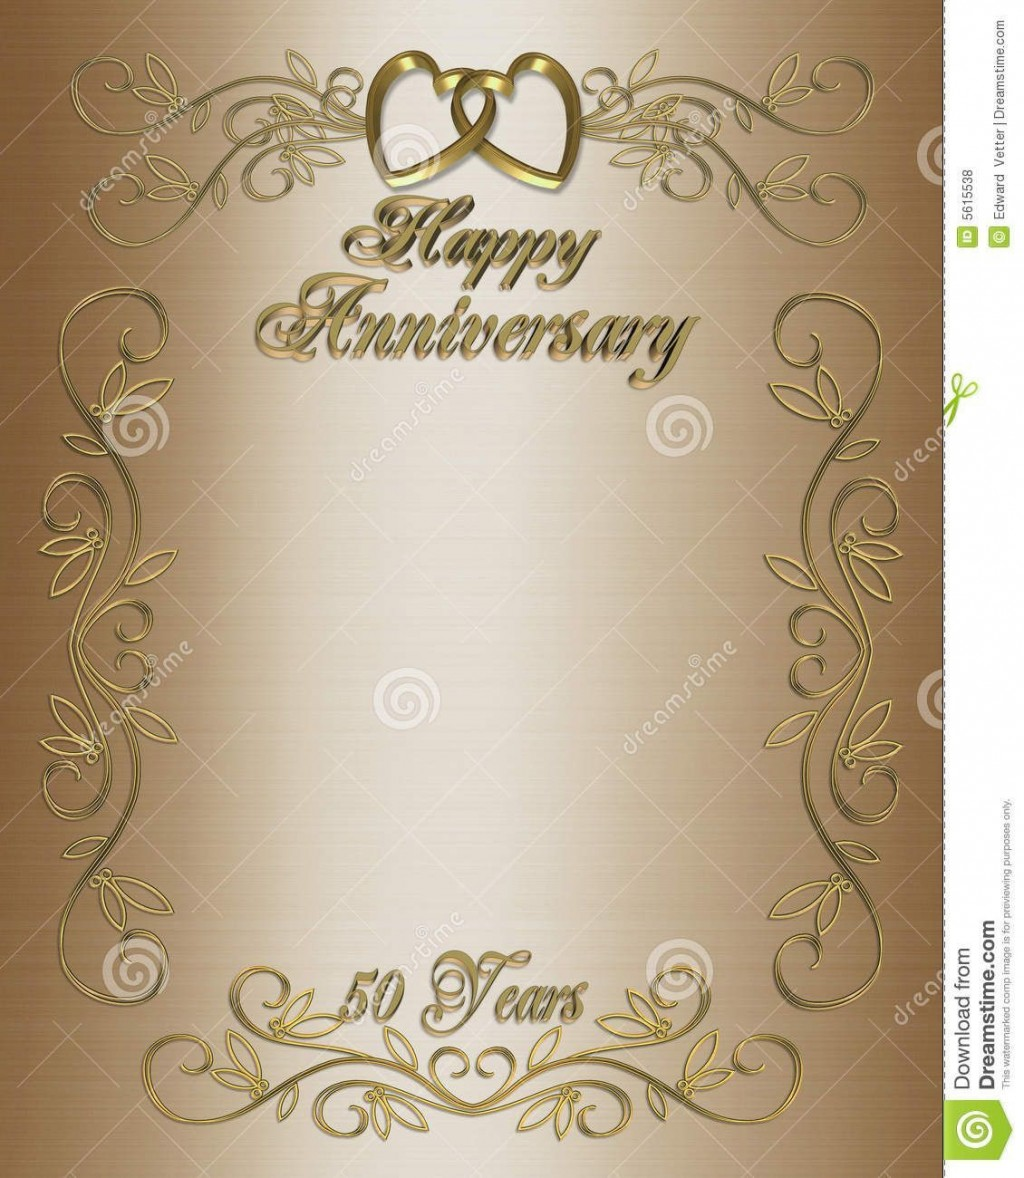 007 Amazing 50th Anniversary Party Invitation Template Picture  Templates Golden Wedding Uk Microsoft Word FreeLarge